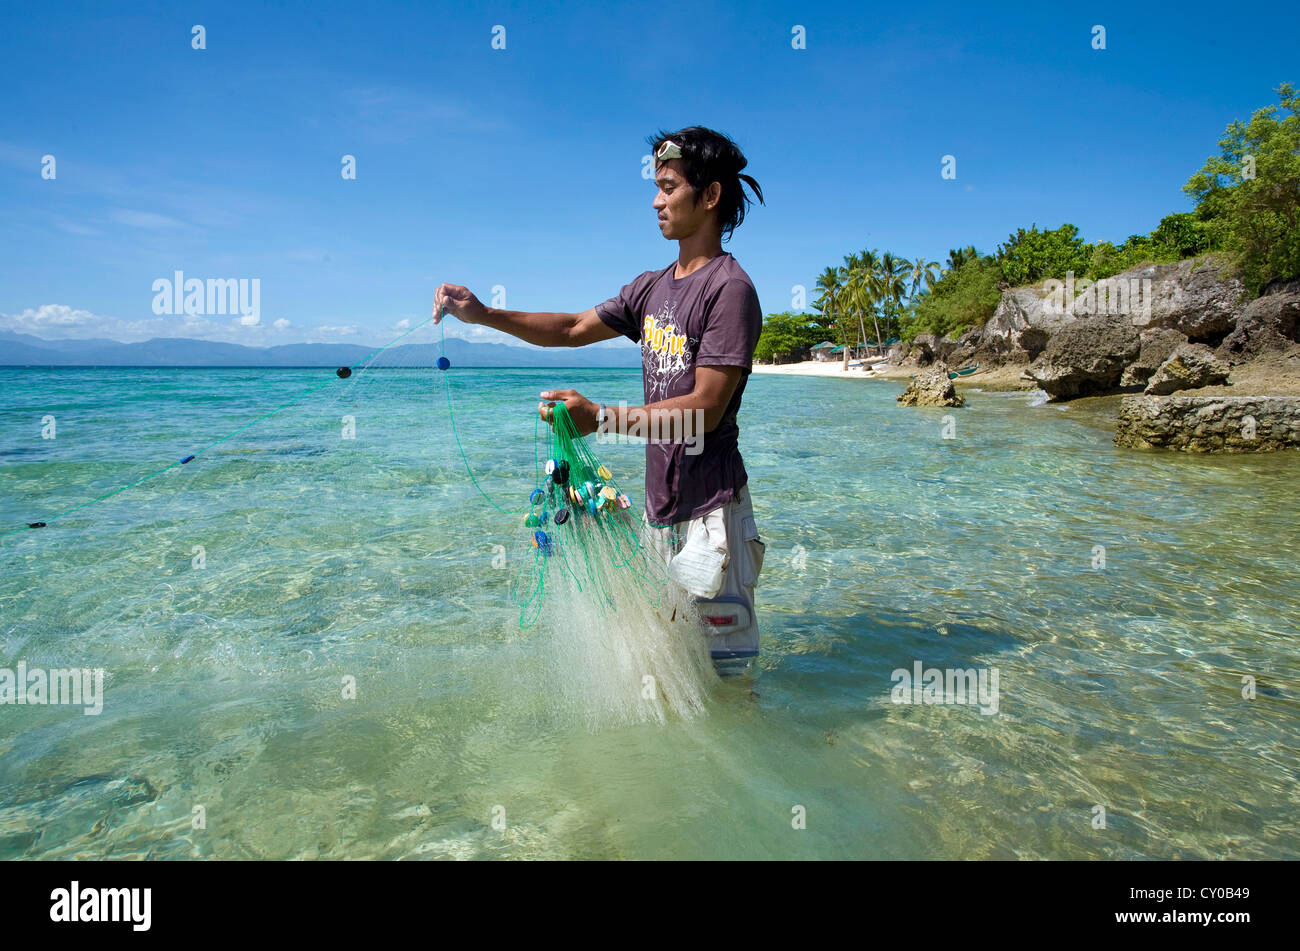 Philippine fisherman catching small bait fish with a net, White Beach, Moalboal, Cebu, Philippines, Indo-Pacific - Stock Image